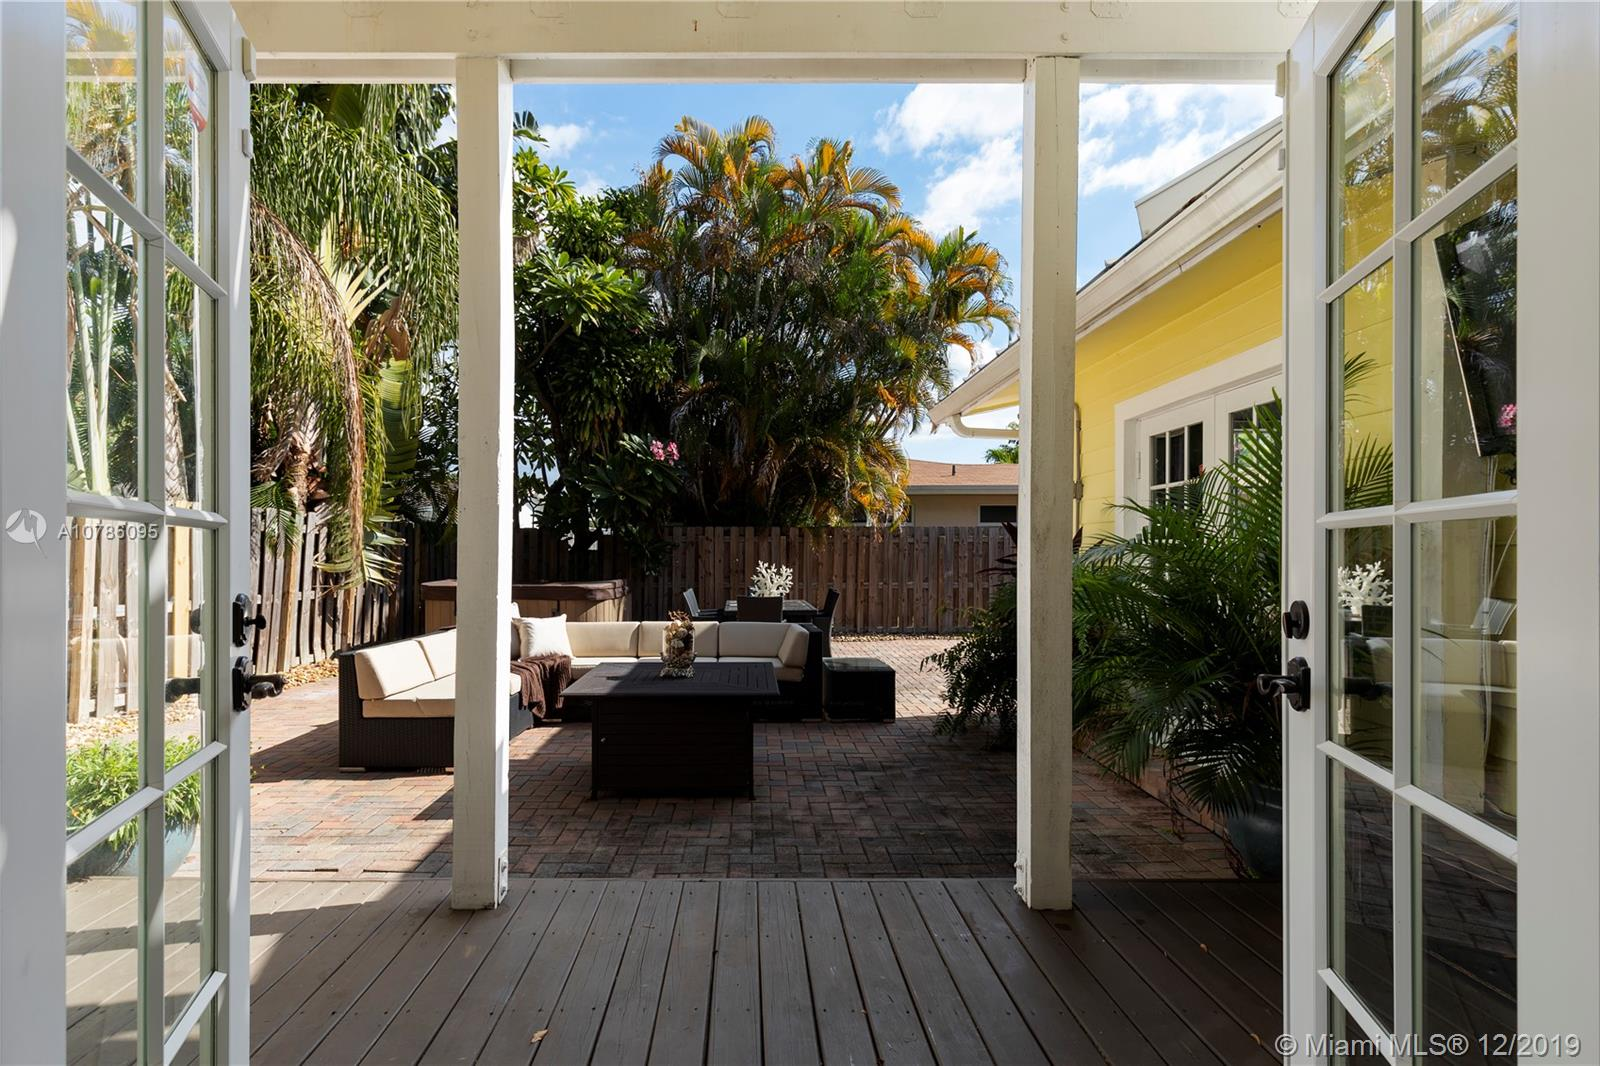 Spacious Key West style home, centrally located in Ft. Lauderdale. Close to shopping, beaches and downtown.  Turnkey home recently renovated.  Private Master suite upstairs with state-of-the-art bath, walk-in closet and private balcony overlooking courtyard and hot tub.  Huge family room perfect for families.  Impact windows and French doors.  RV/Boat Parking